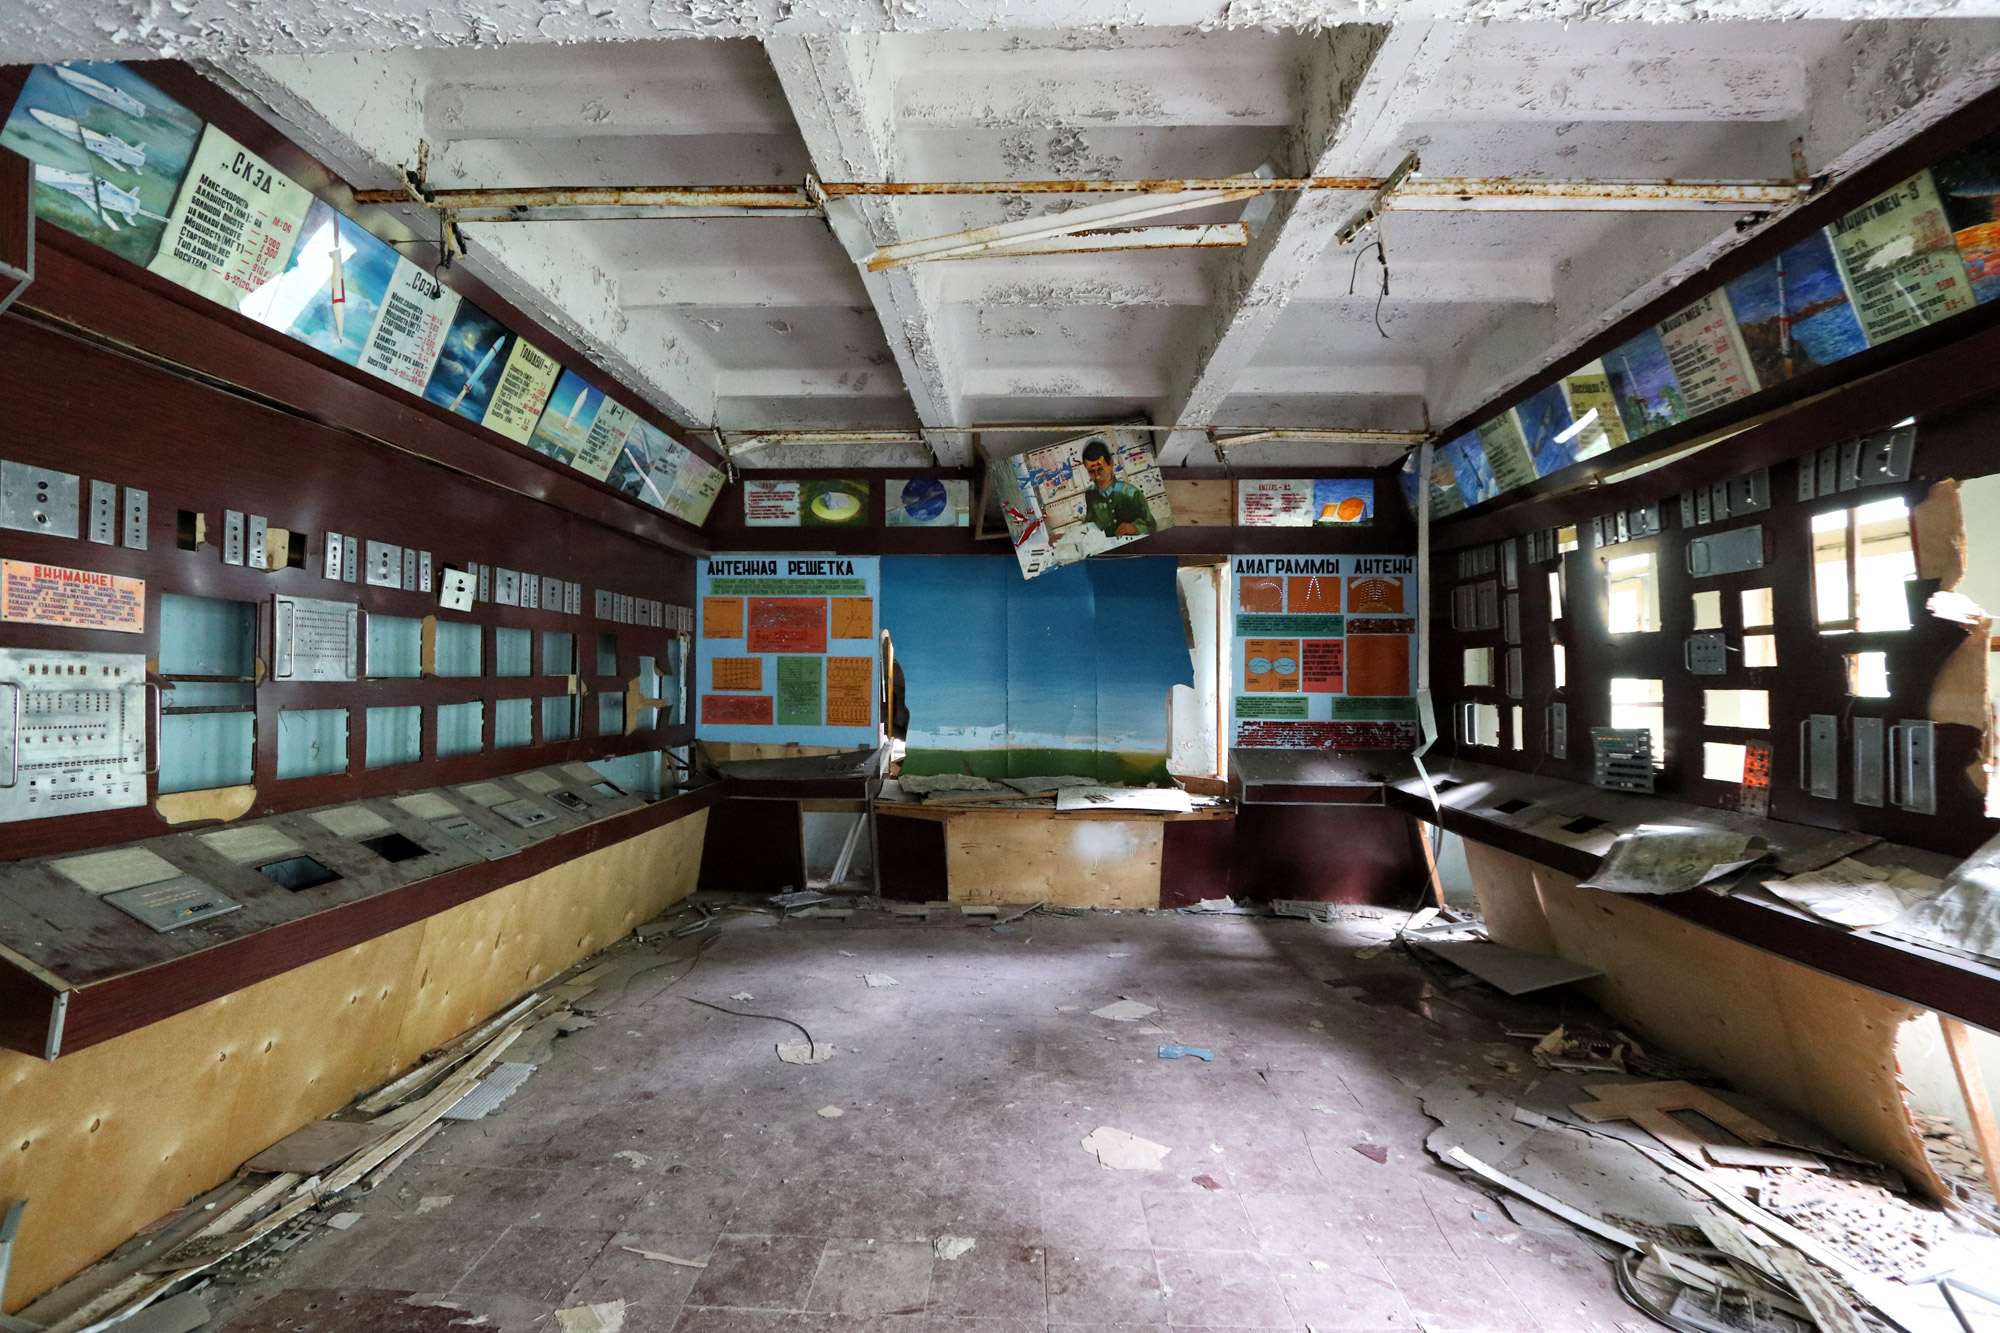 Tsjernobyl - Chernobyl 2 - Communication Building